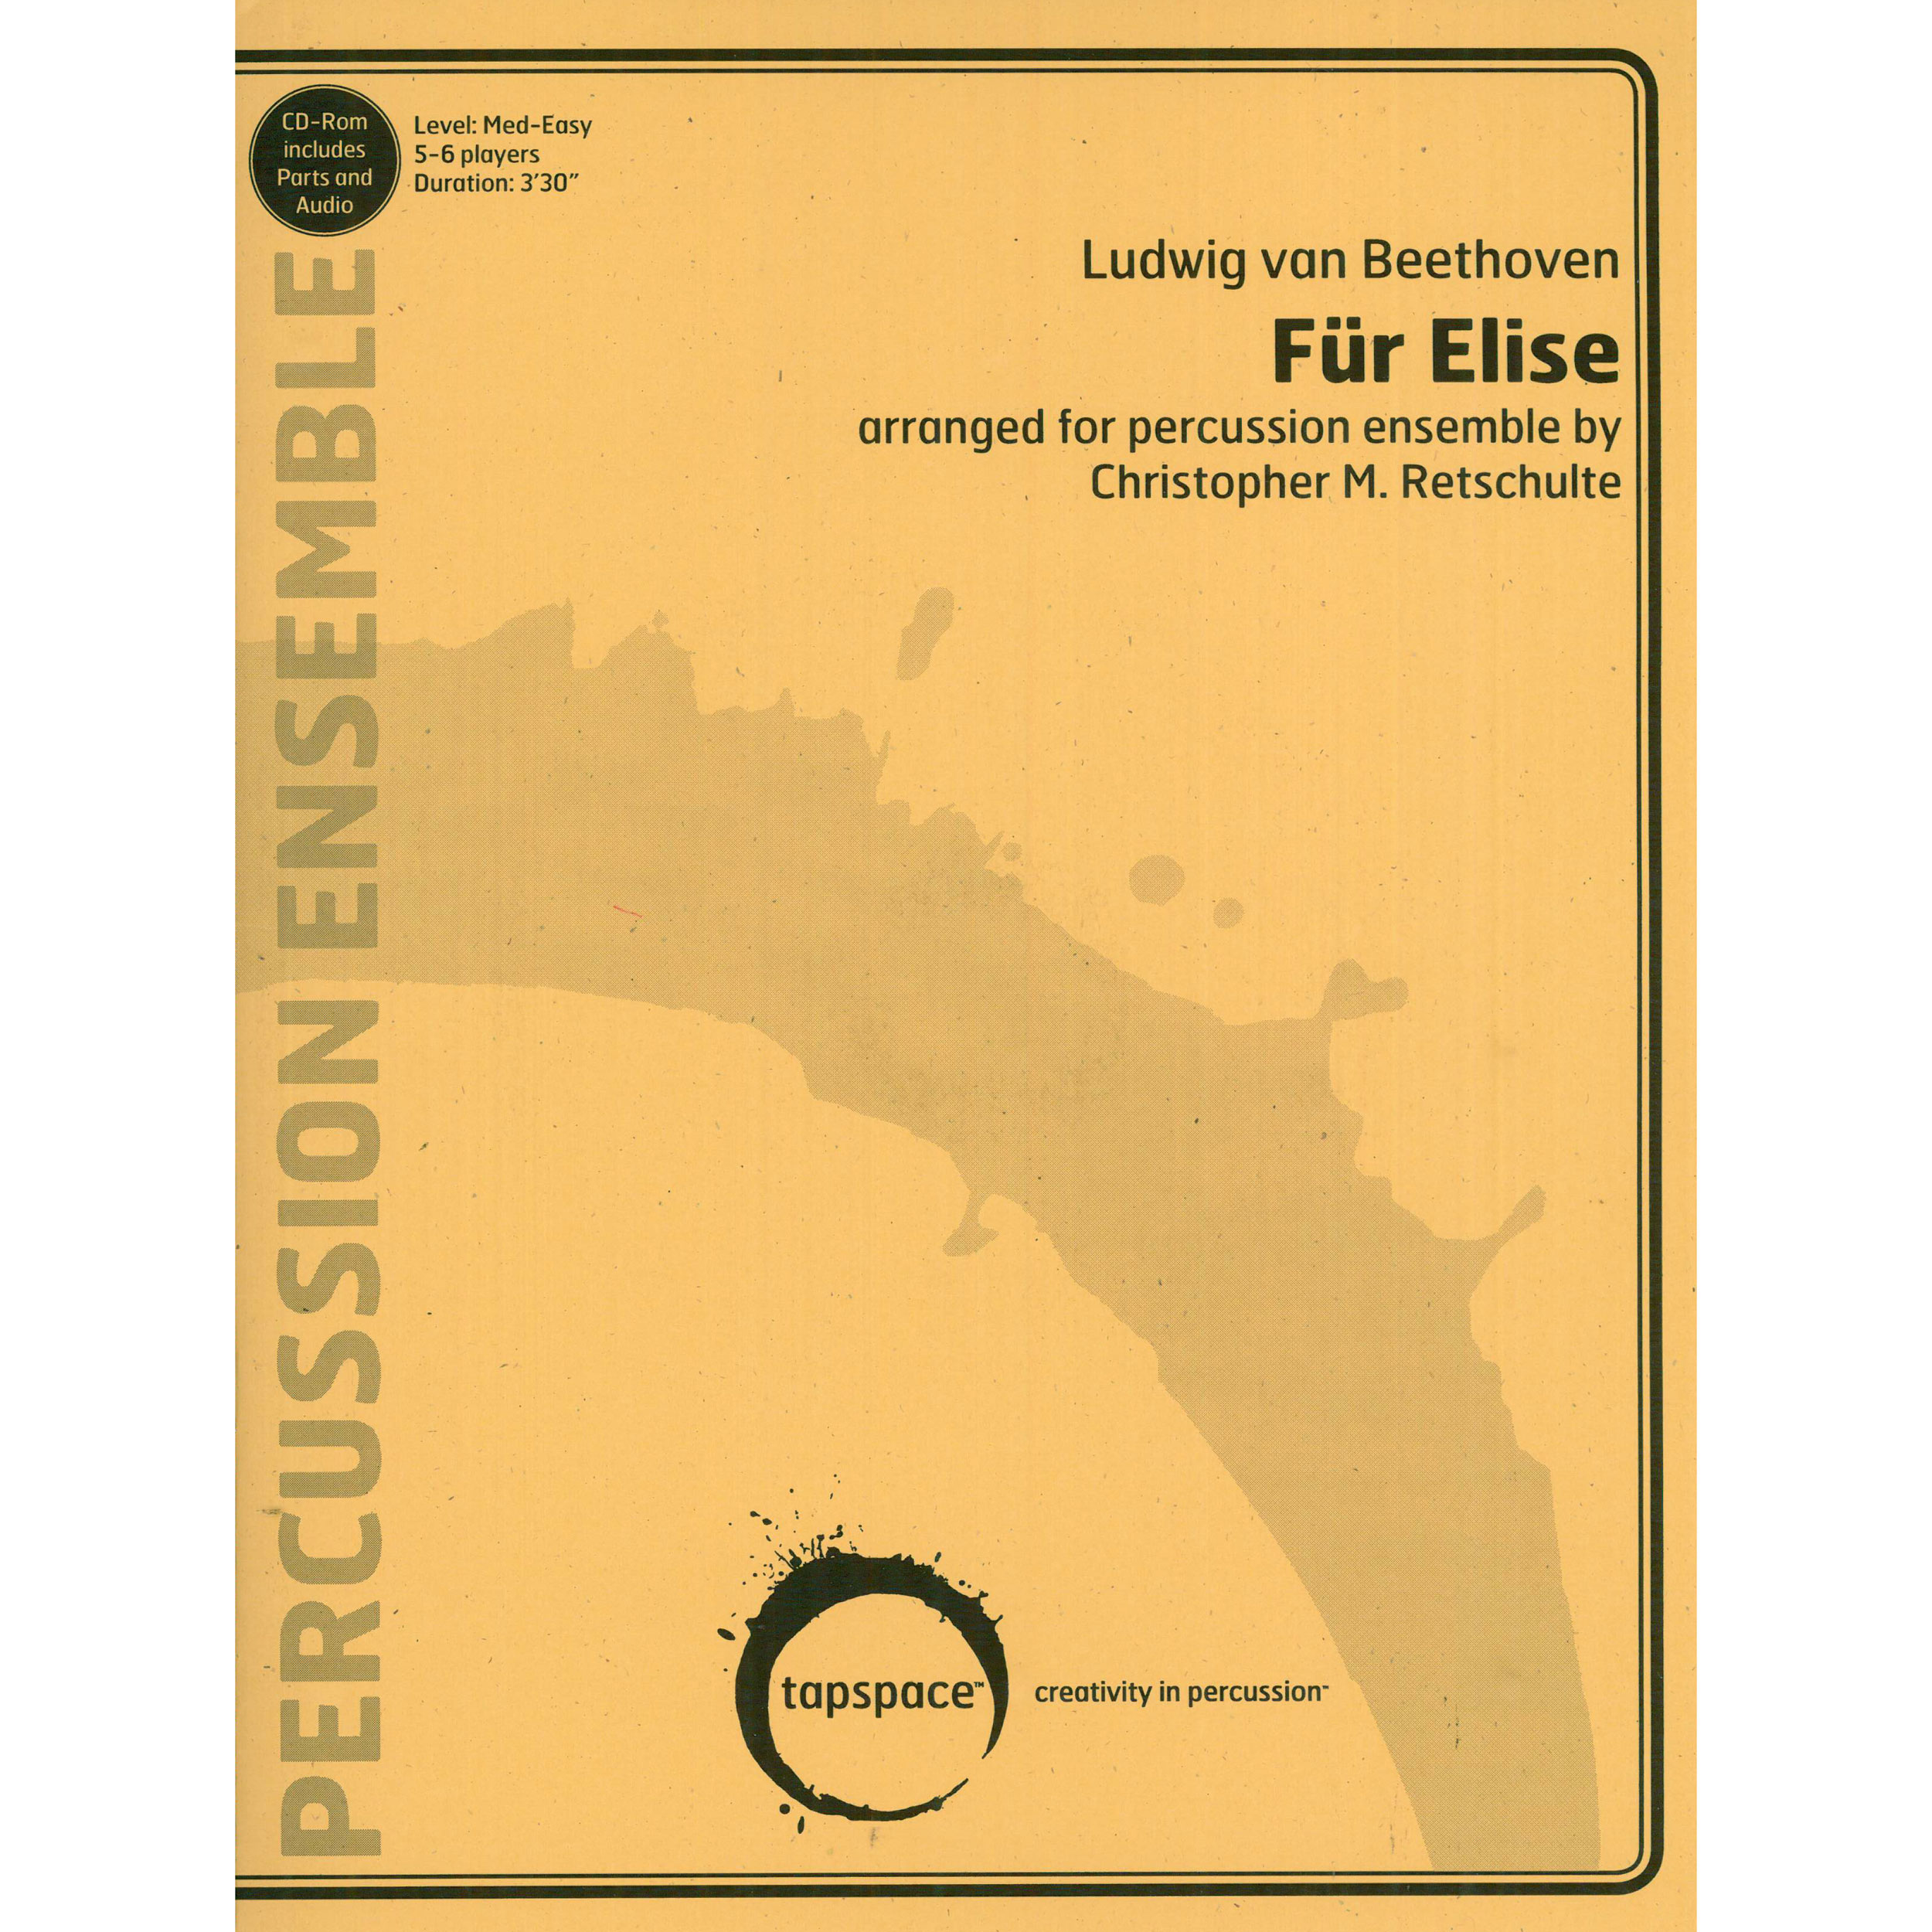 Fur Elise by Beethoven arr. Christopher M. Retschulte